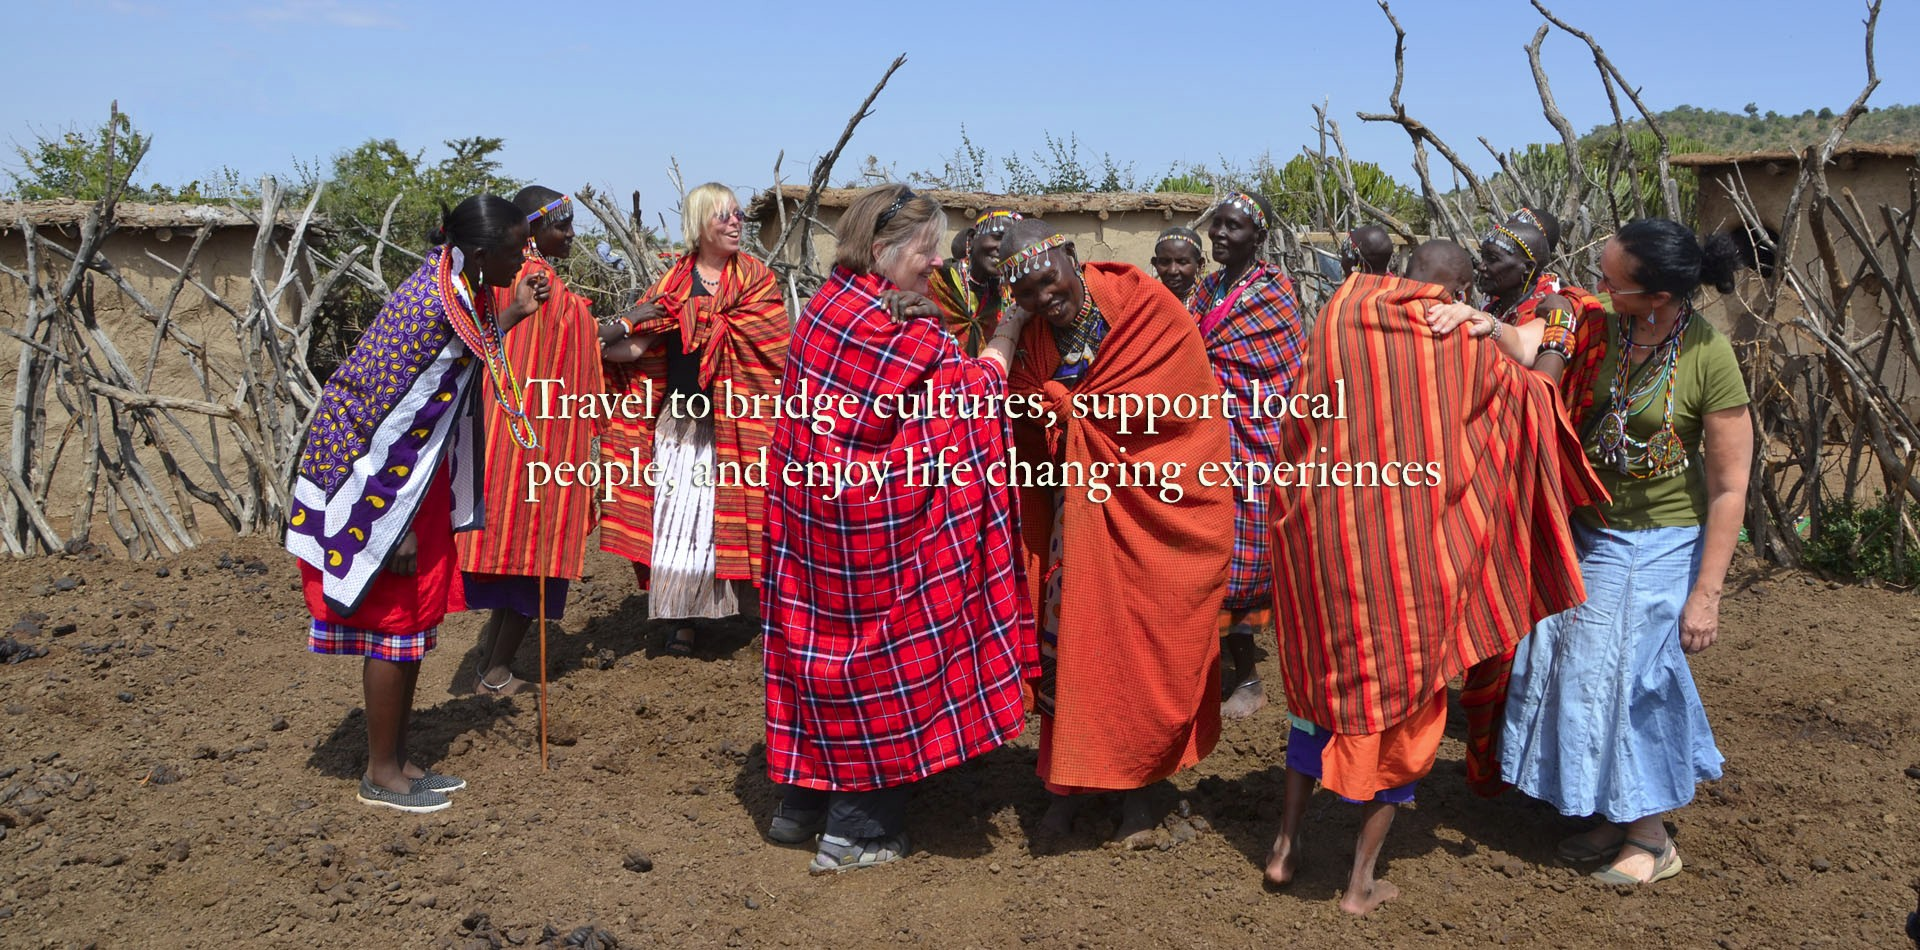 Maasai_Cultural_Exchange_Women_Nariku_Travel_Experiences